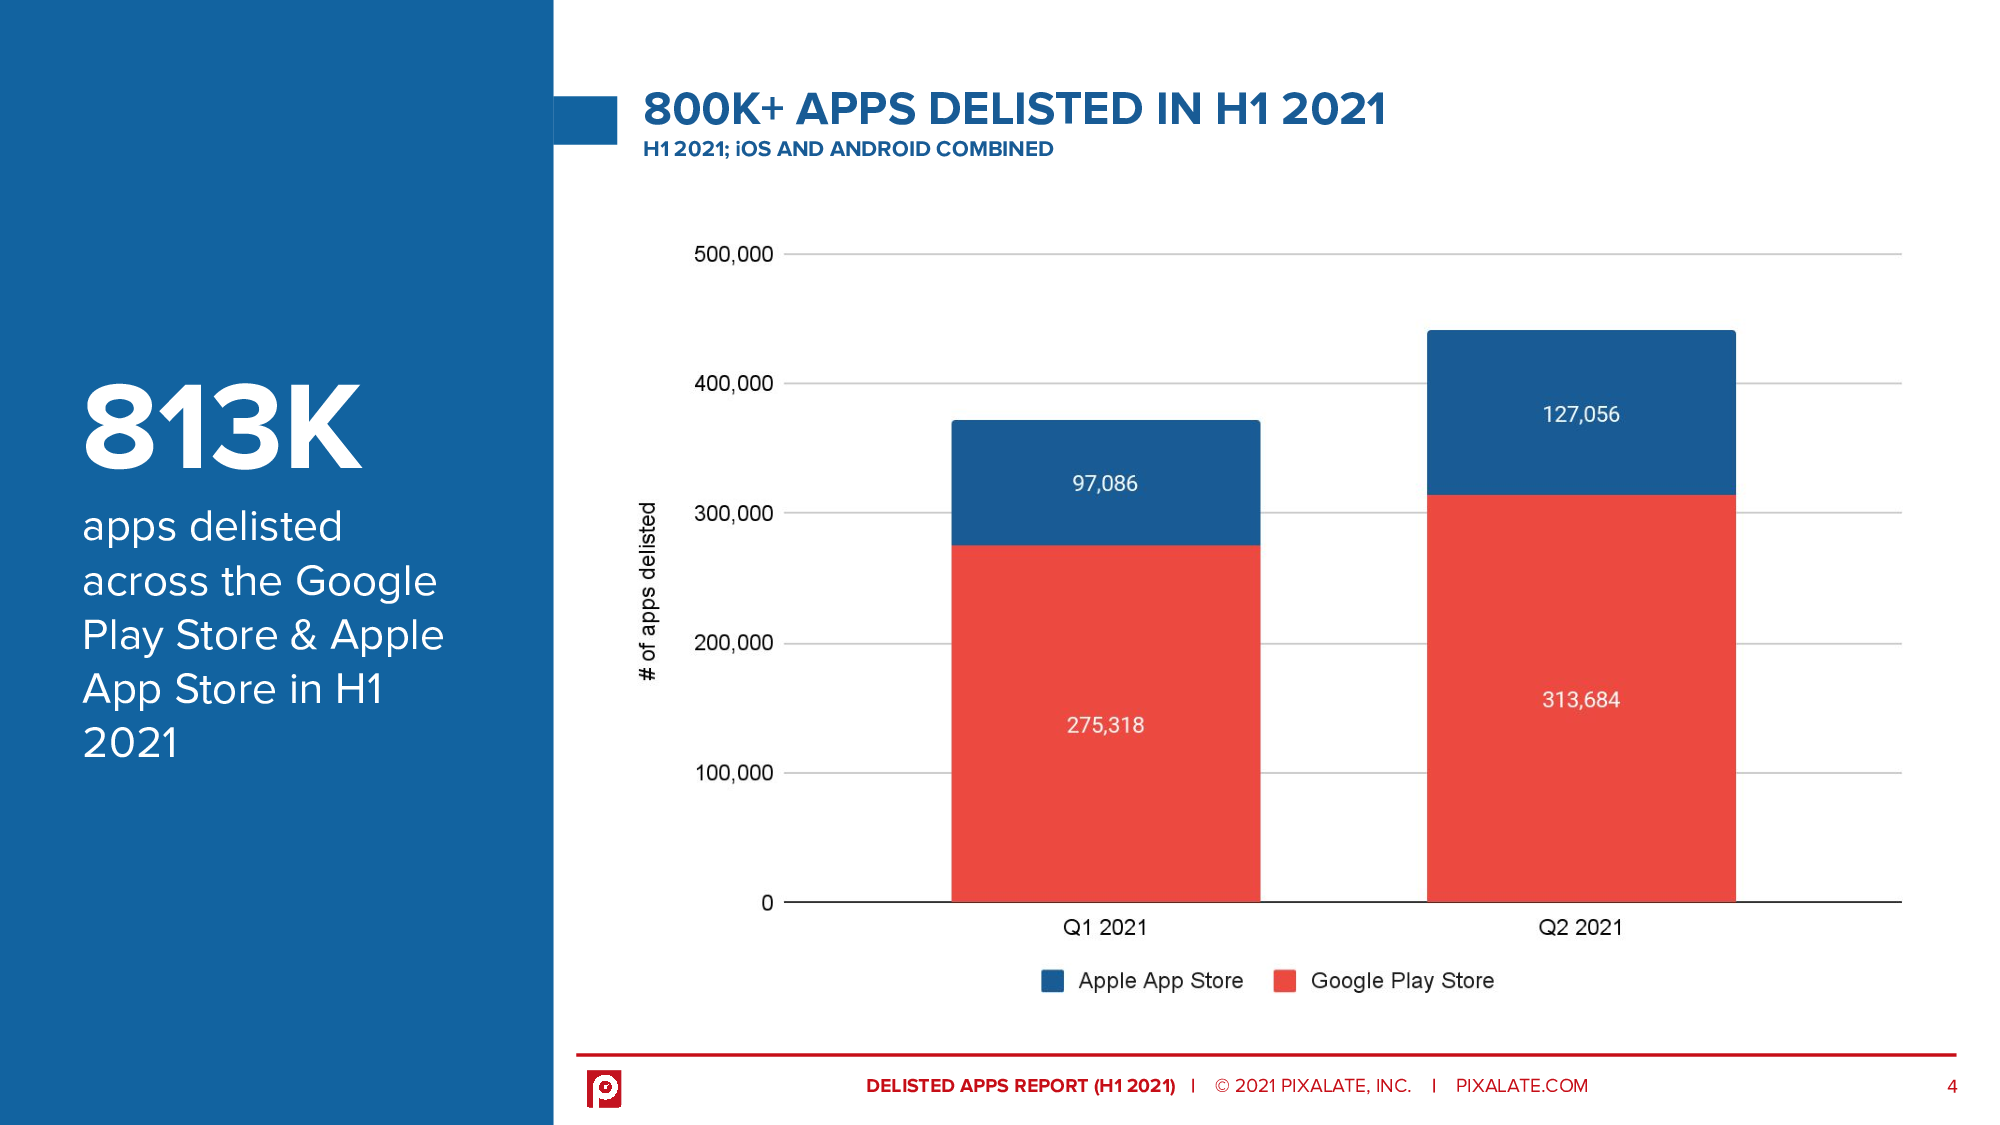 Over 813,000 app were delisted in H1 2021